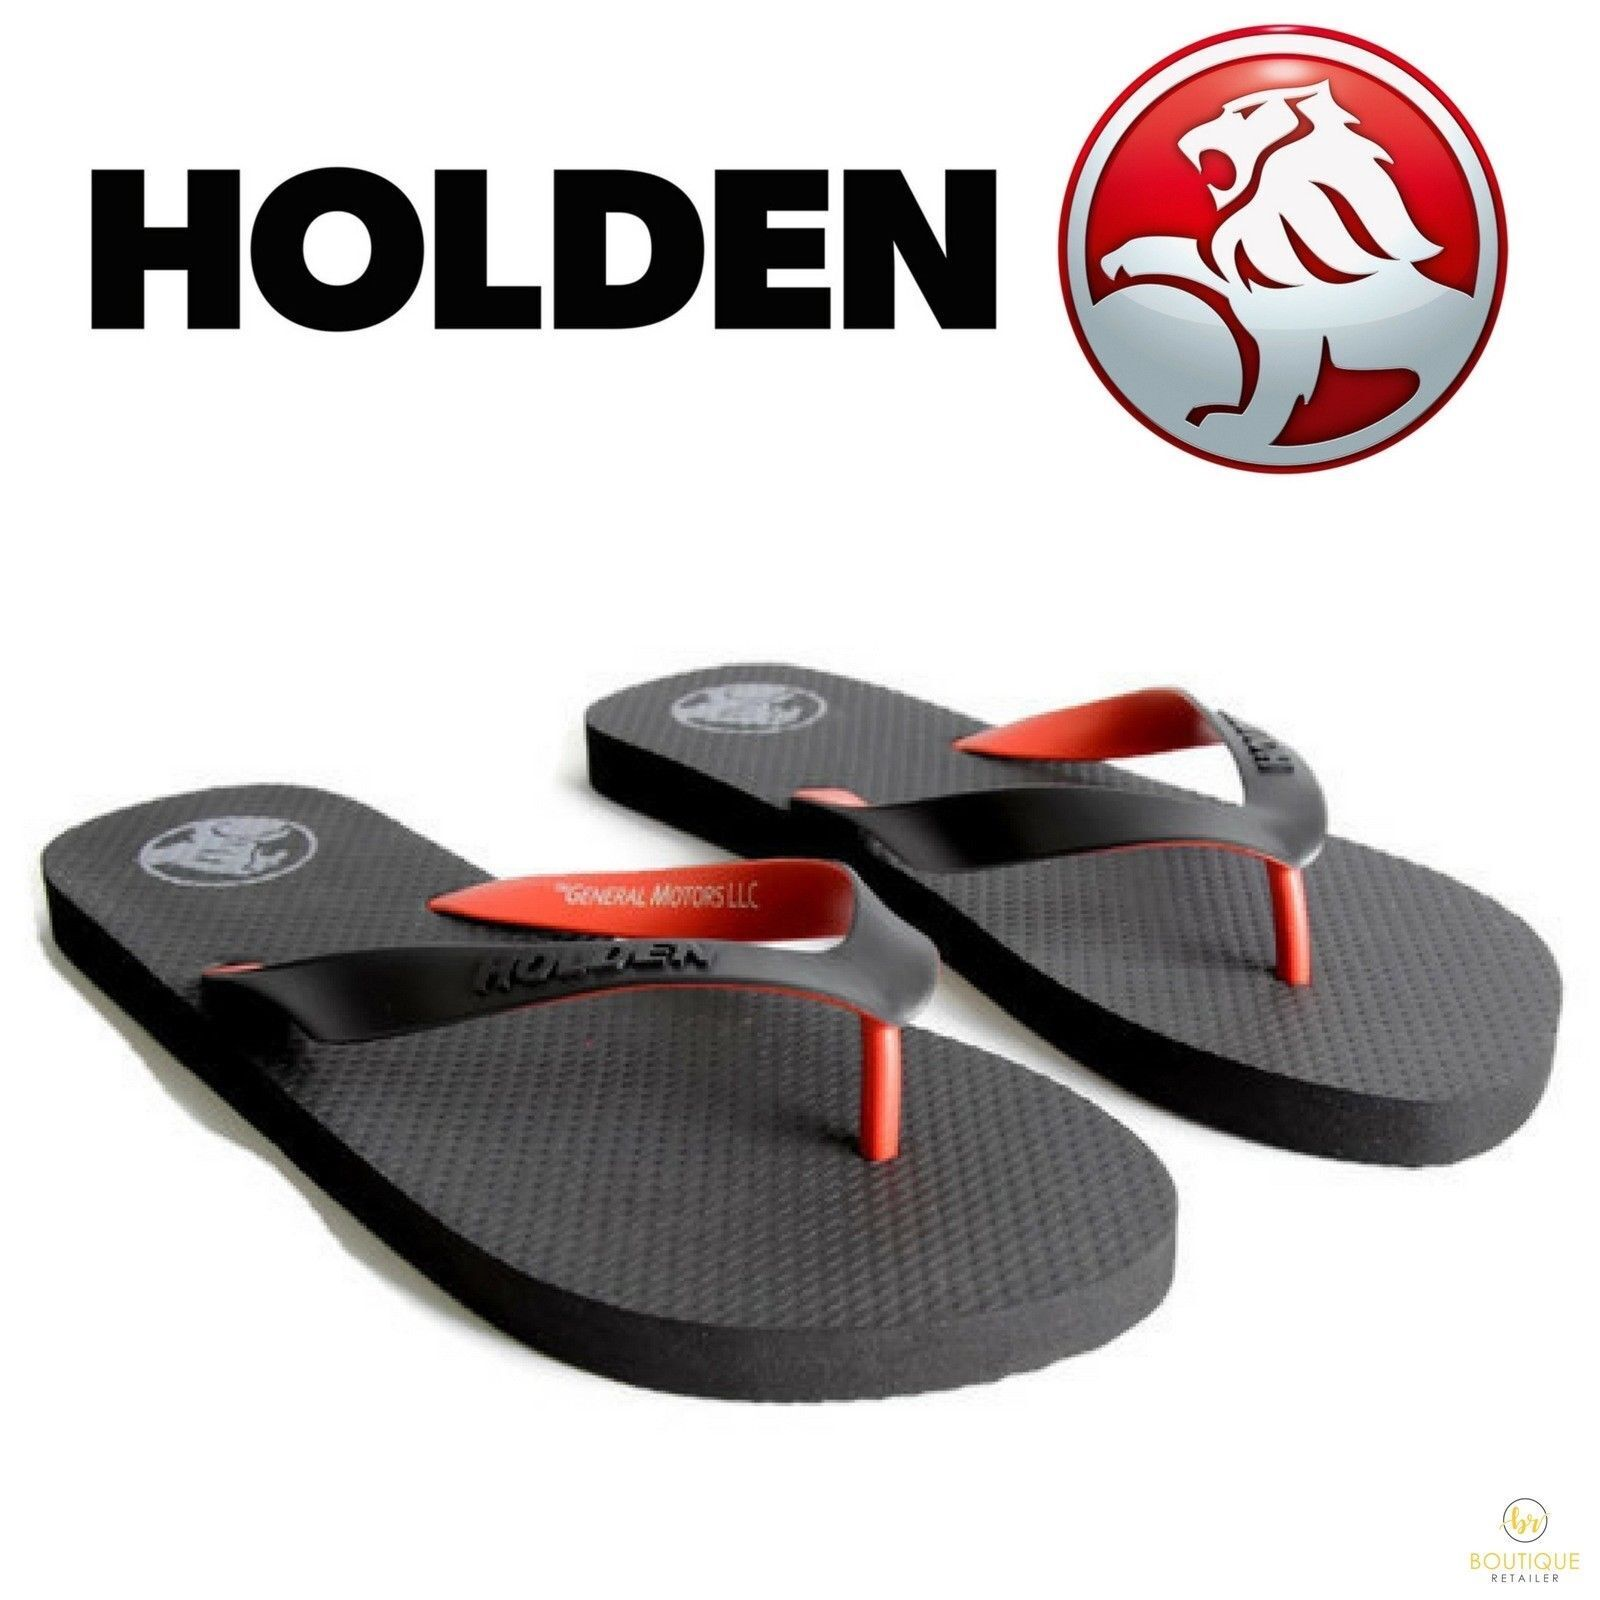 2cb5b3db8 h m s Remaining. HOLDEN Thongs Flip Flops Mens Womens Sandals Shoes  OFFICIAL Slippers New